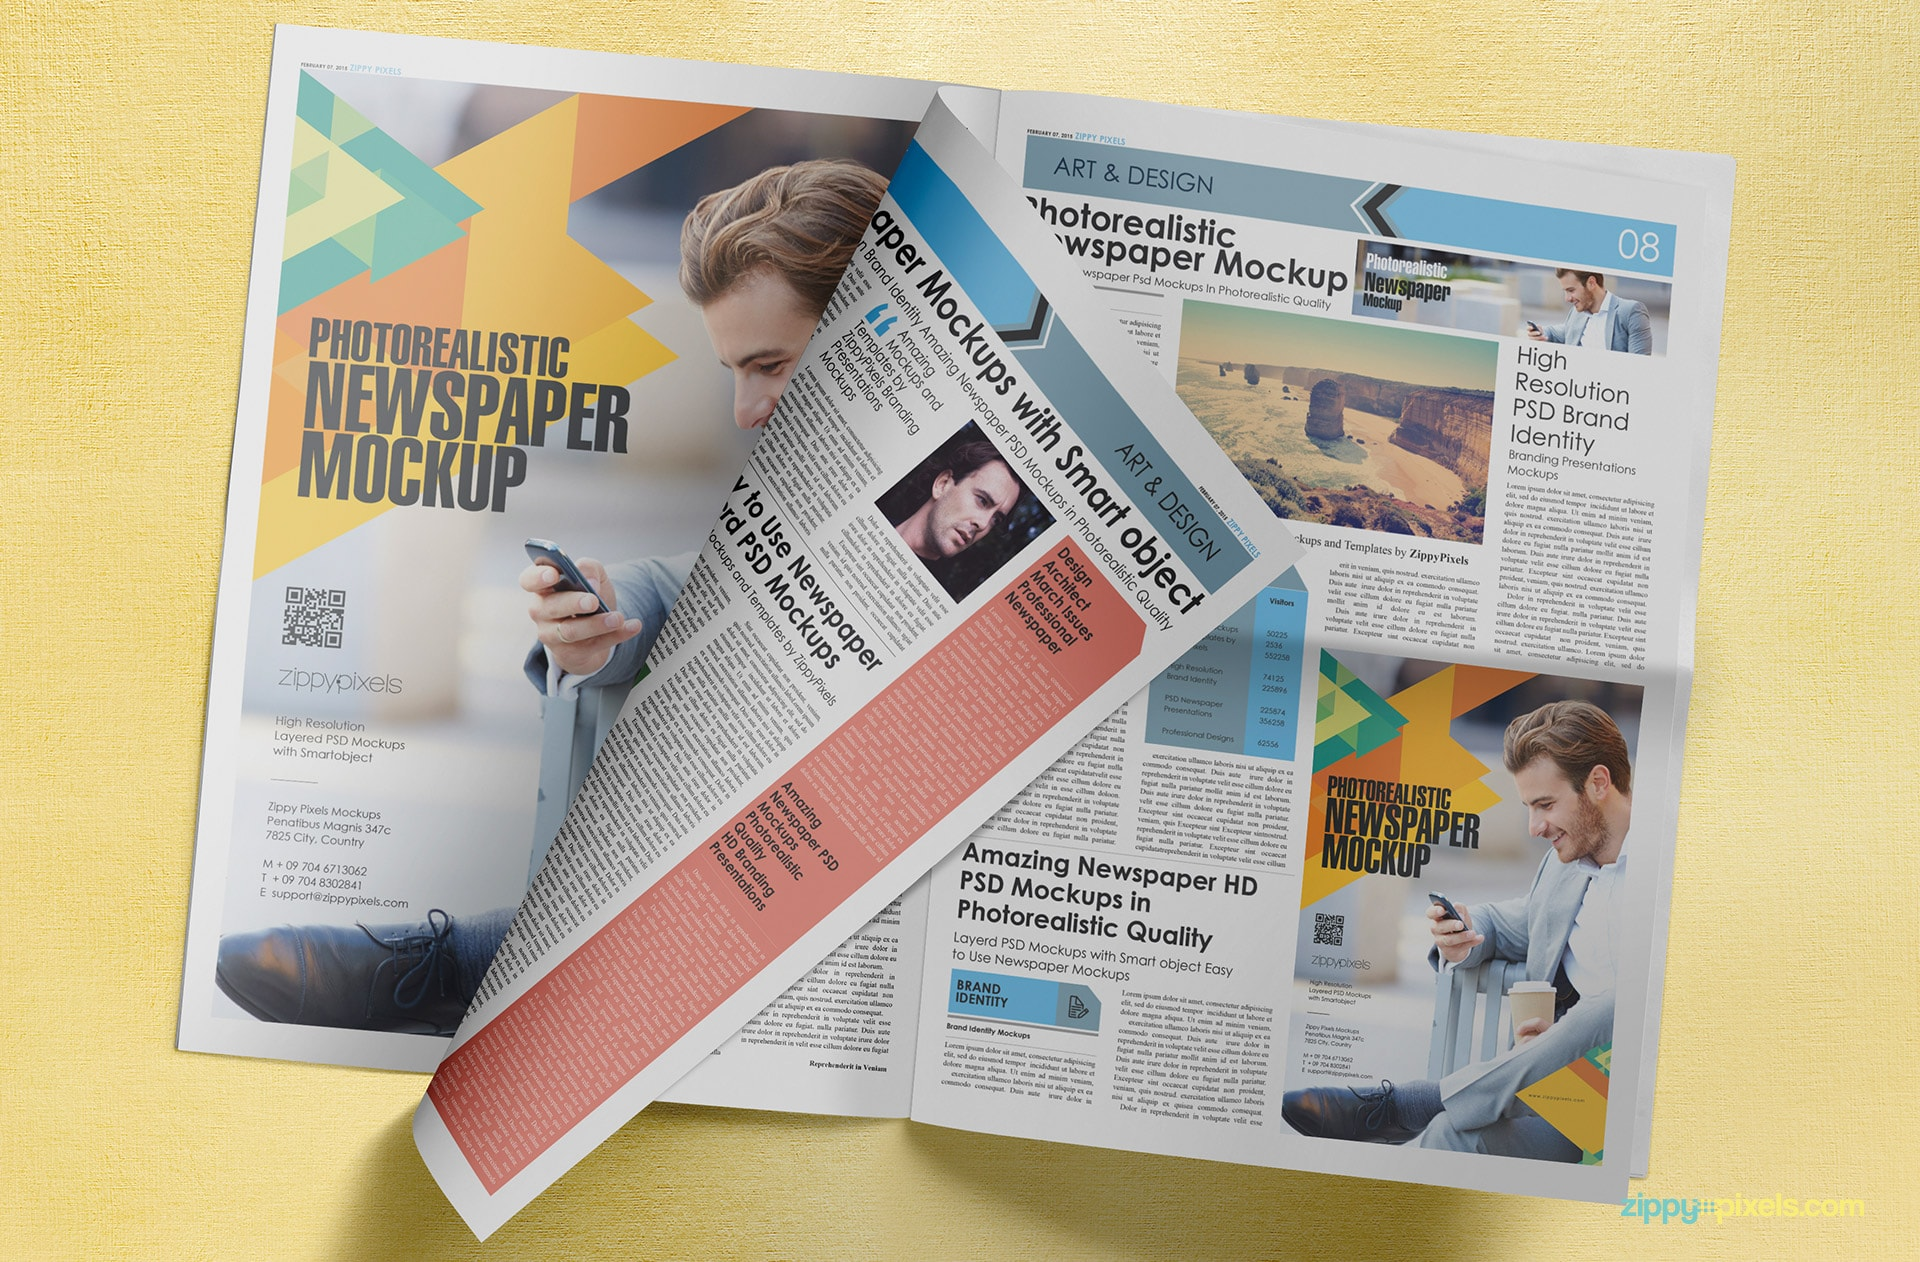 full spread tabloid newspaper mockup lying flat showing 3 pages & a quarter page ad